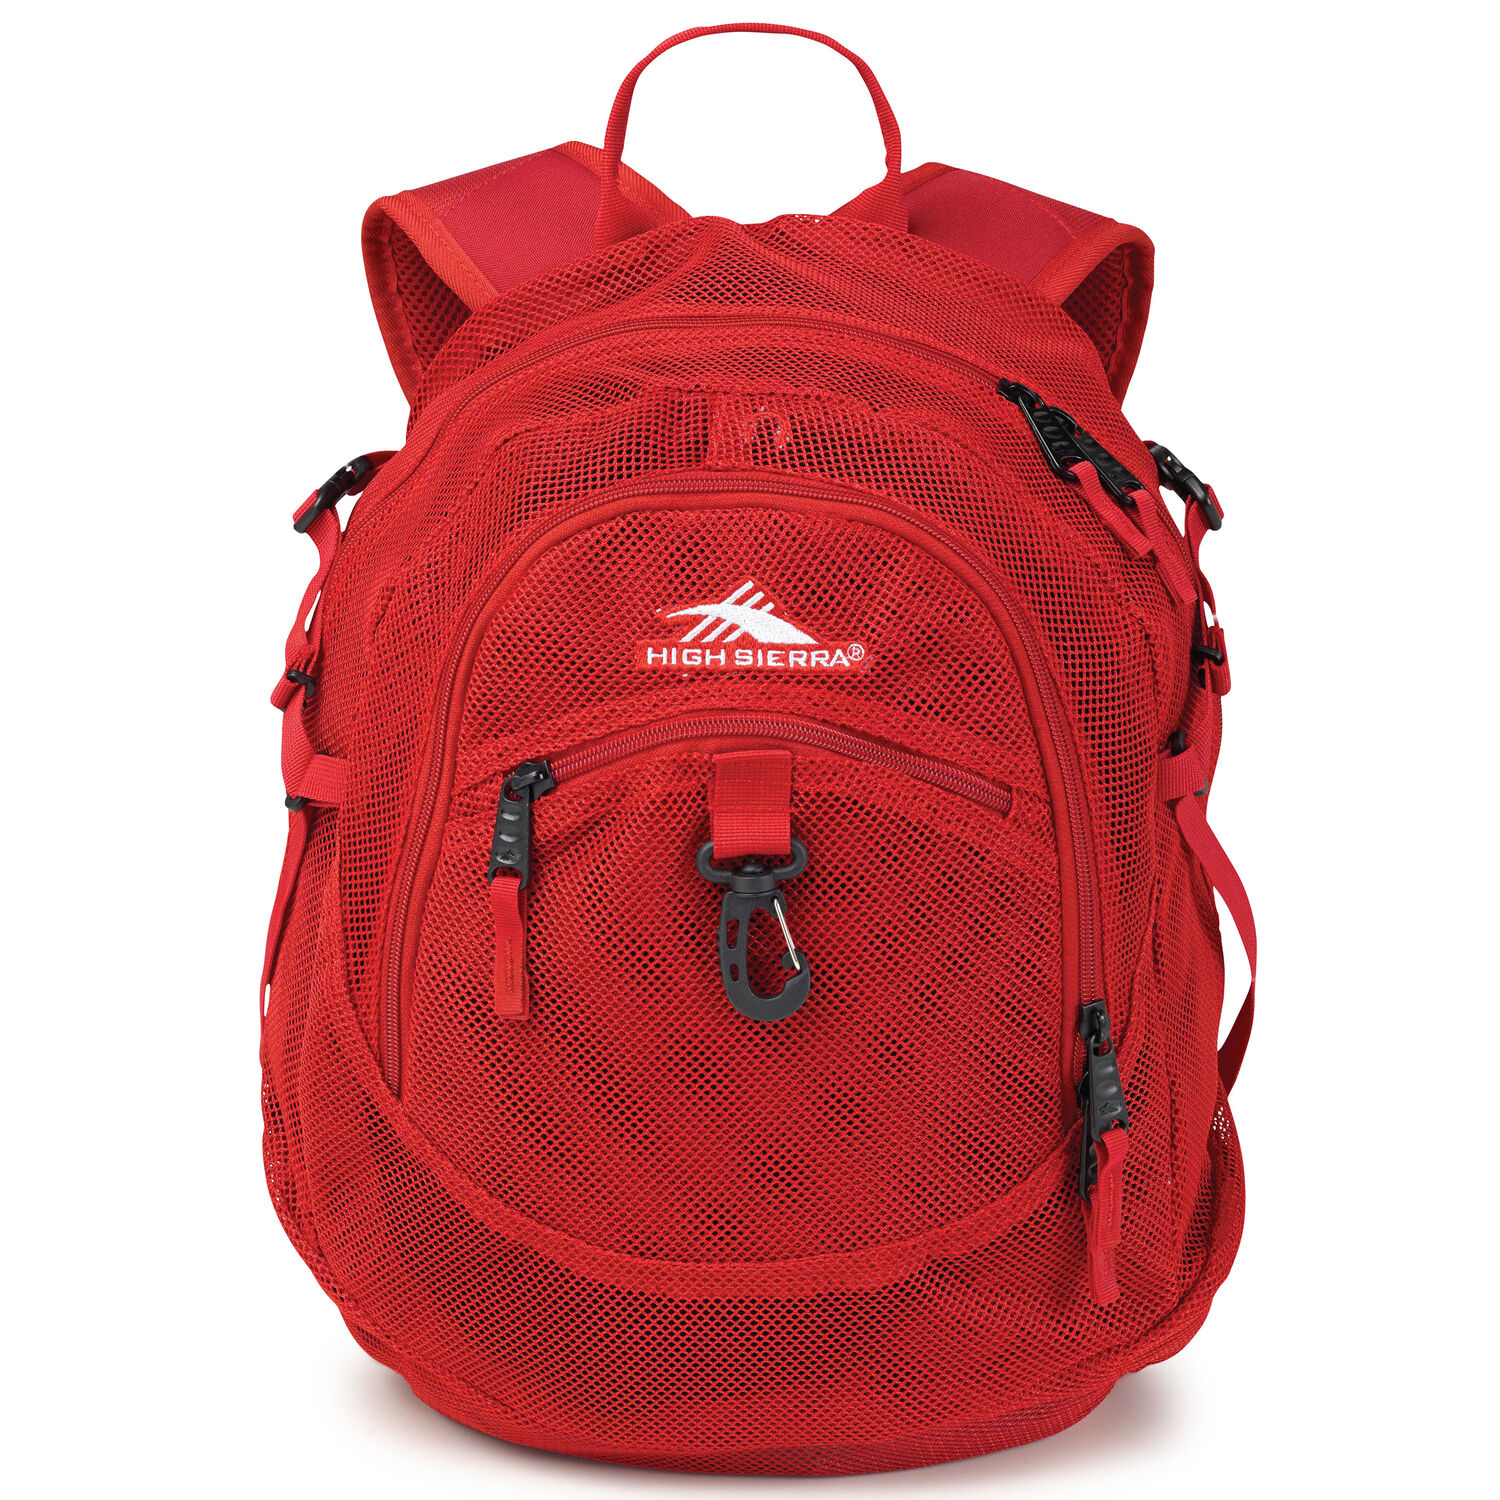 Best Mesh Backpacks For High School- Fenix Toulouse Handball 31a029511b2ef